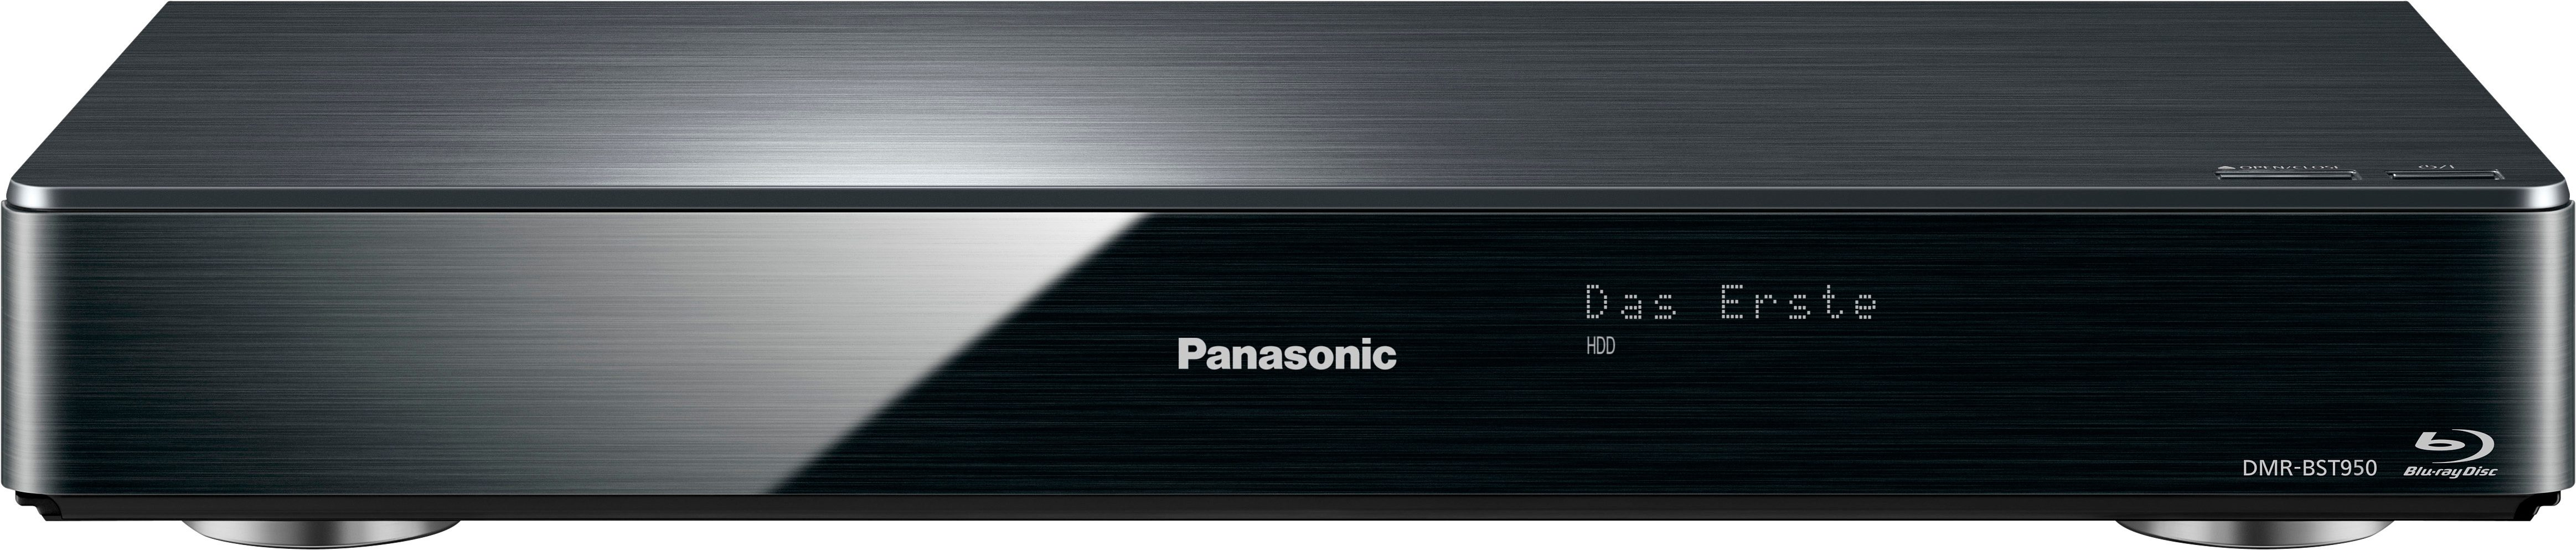 Panasonic DMR-BST950EG Blu-ray-Recorder, 3D-fähig, 4K (Ultra-HD), 2000 GB, WLAN